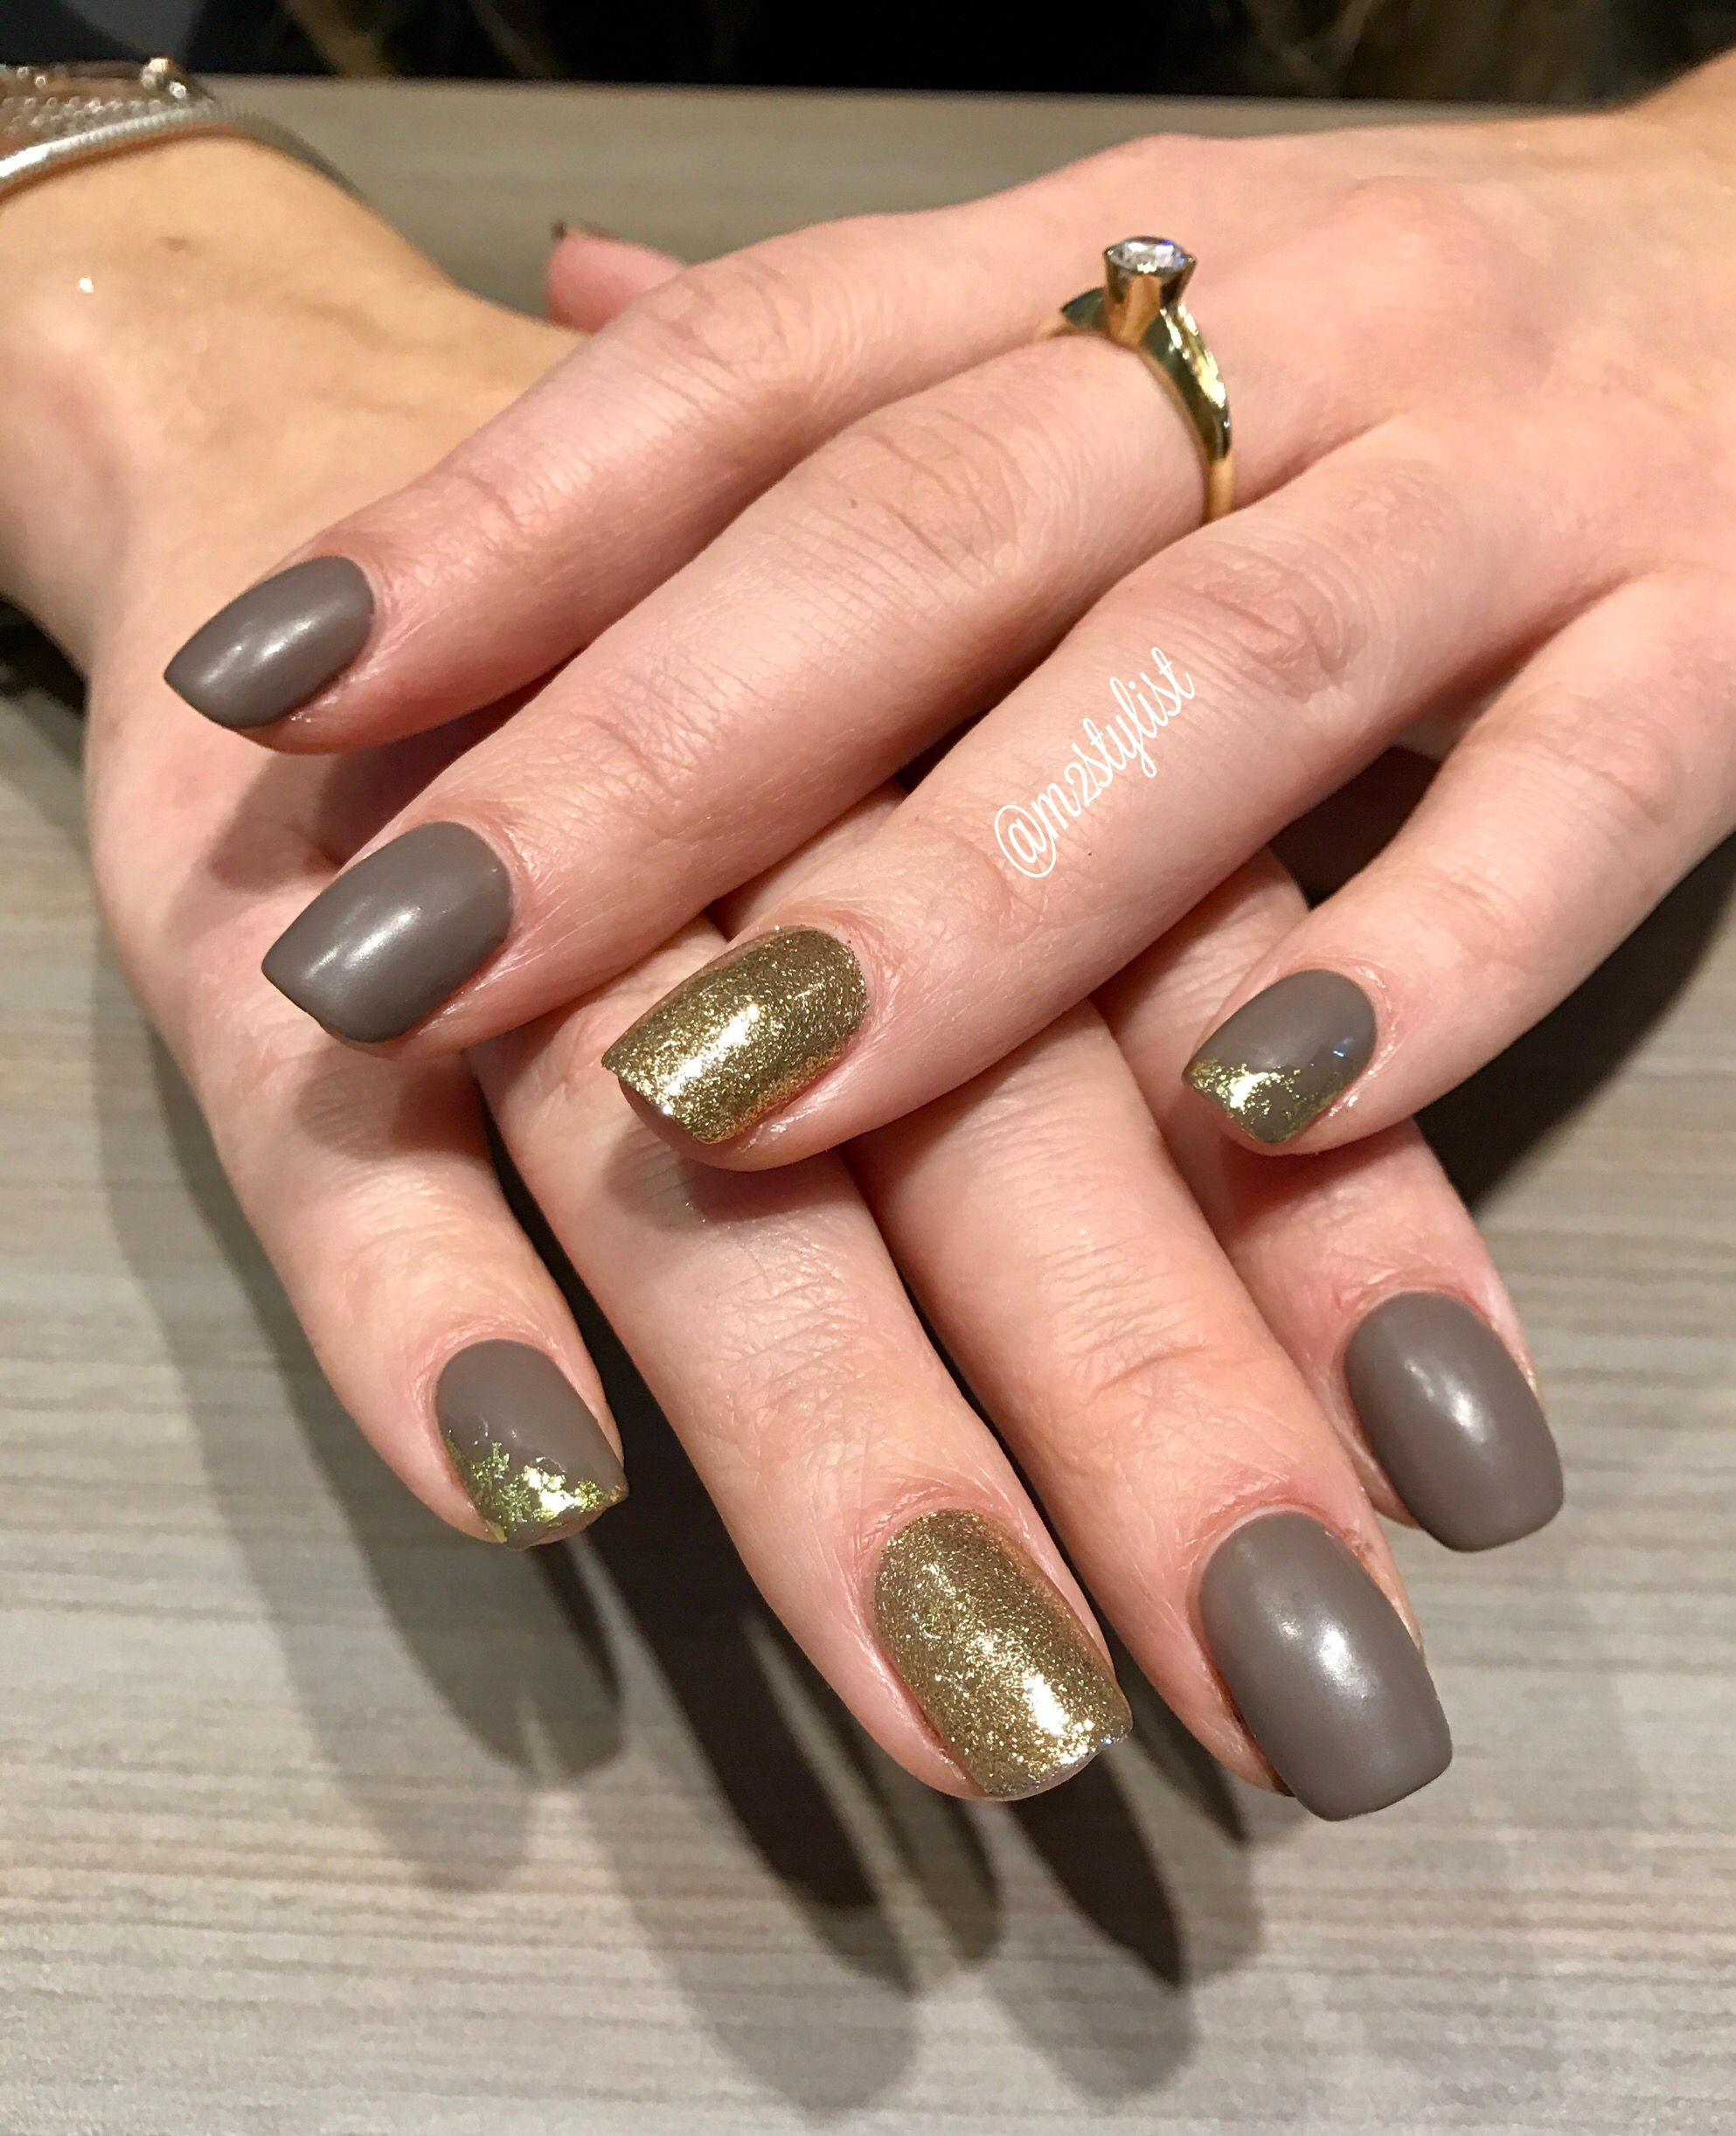 Neutral with gold glitter accent nail | M2stylist creations ...